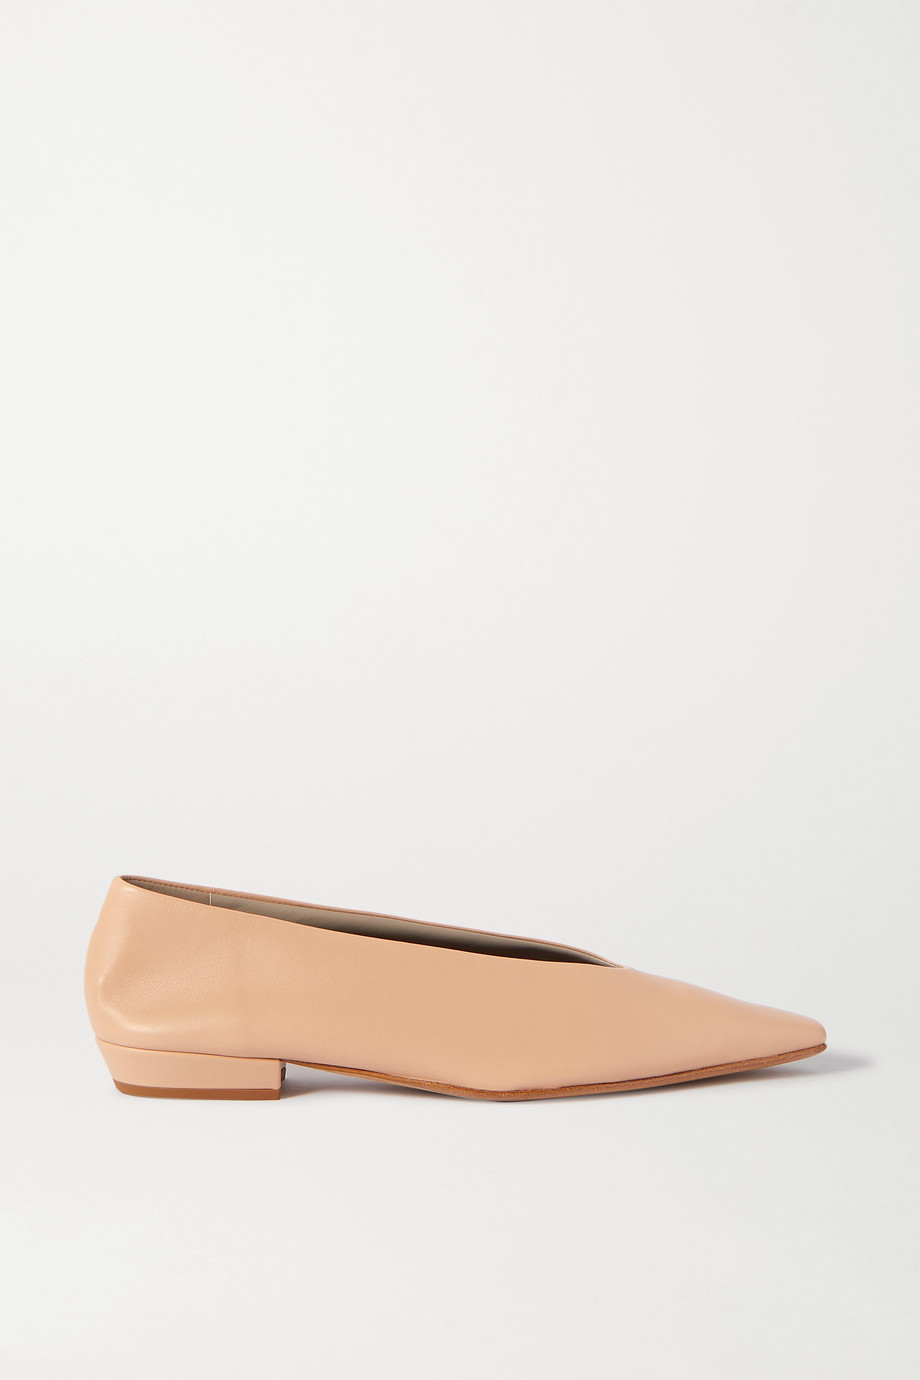 Bottega Veneta Leather ballet flats